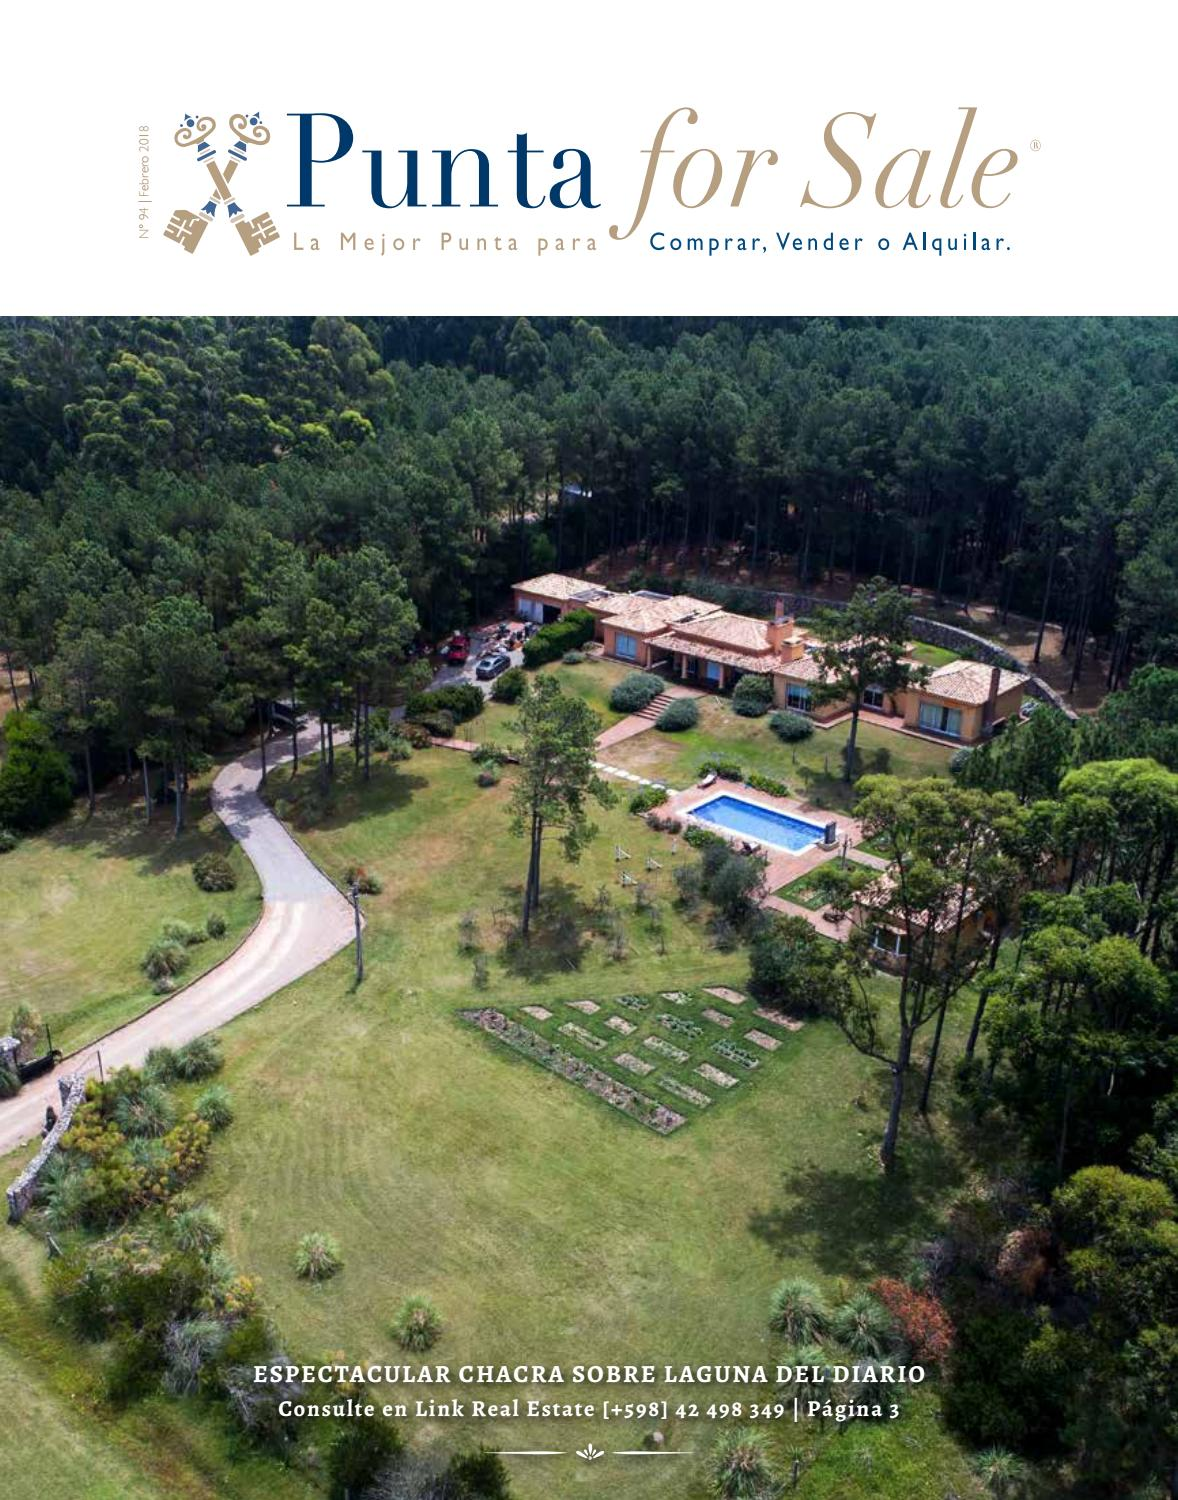 Revista de Real Estate Punta For Sale, edición #95 Febrero/Marzo 2018